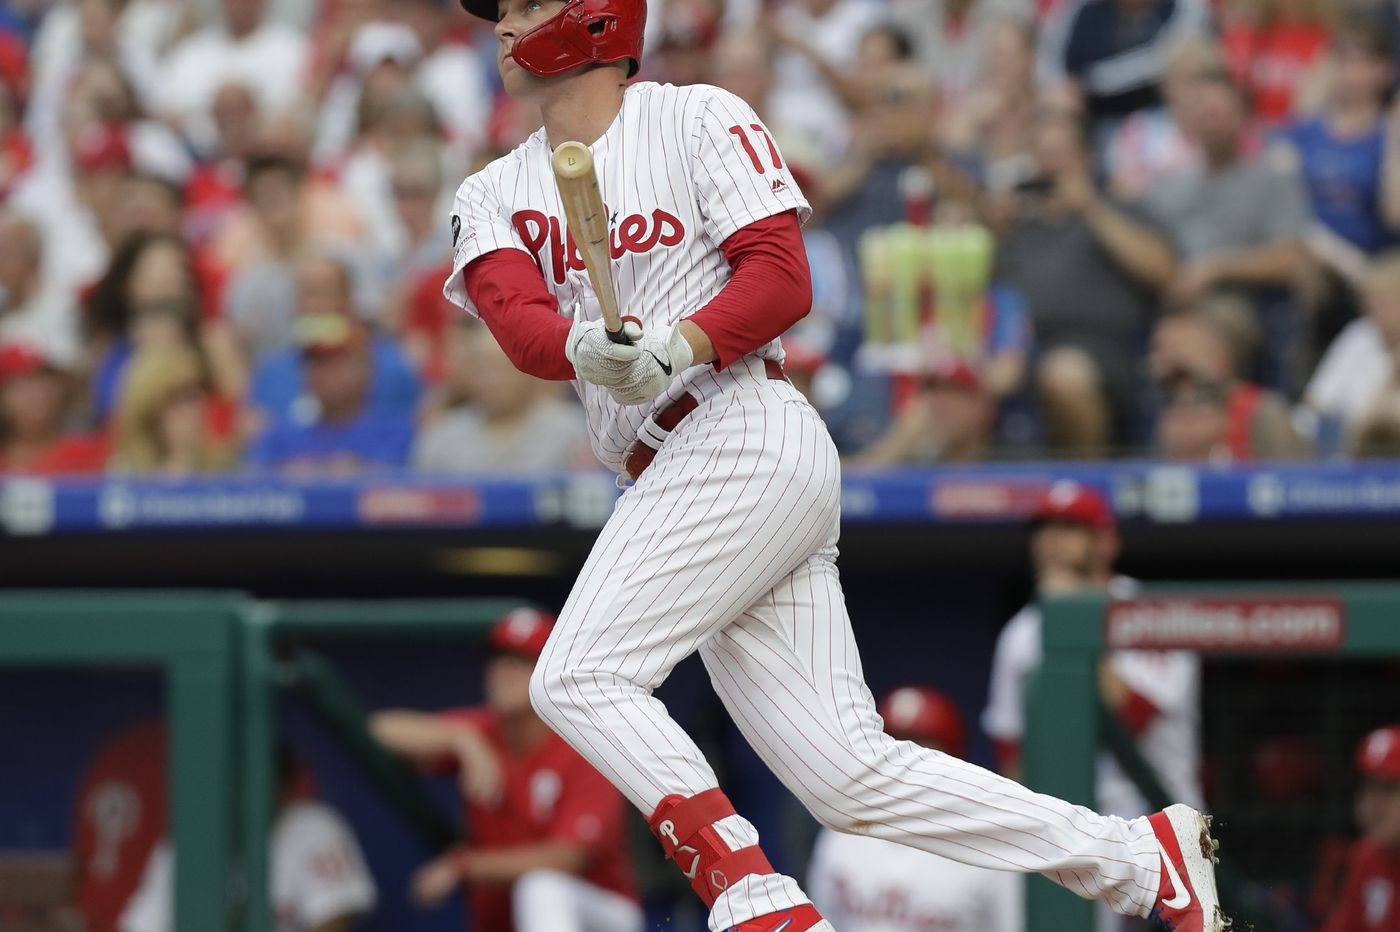 The Phillies' season is slipping away but Rhys Hoskins is an anchor | Marcus Hayes